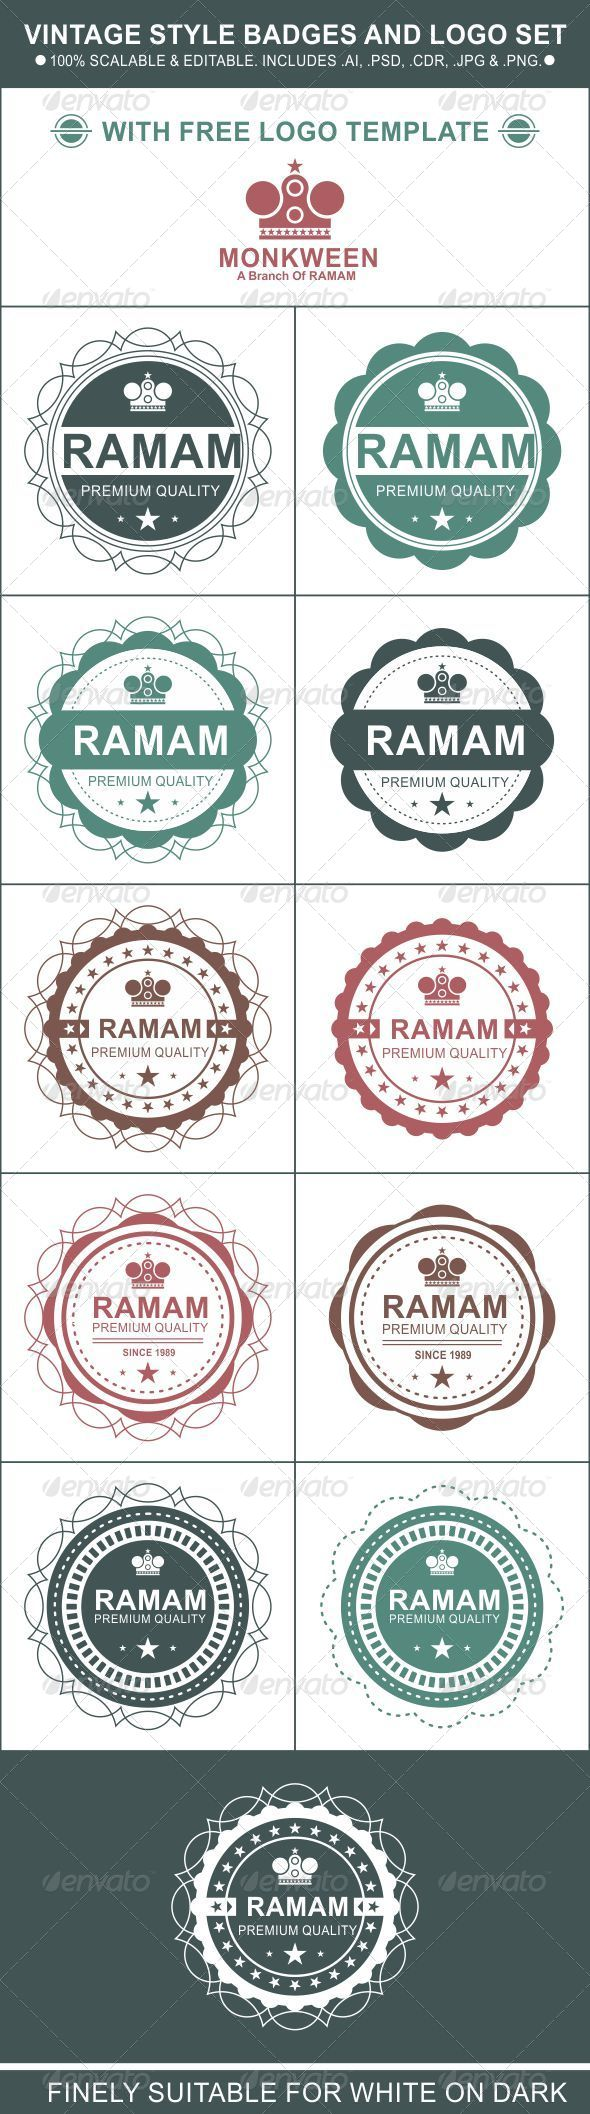 GraphicRiver Vintage Style Badges and Logo Set 6115934